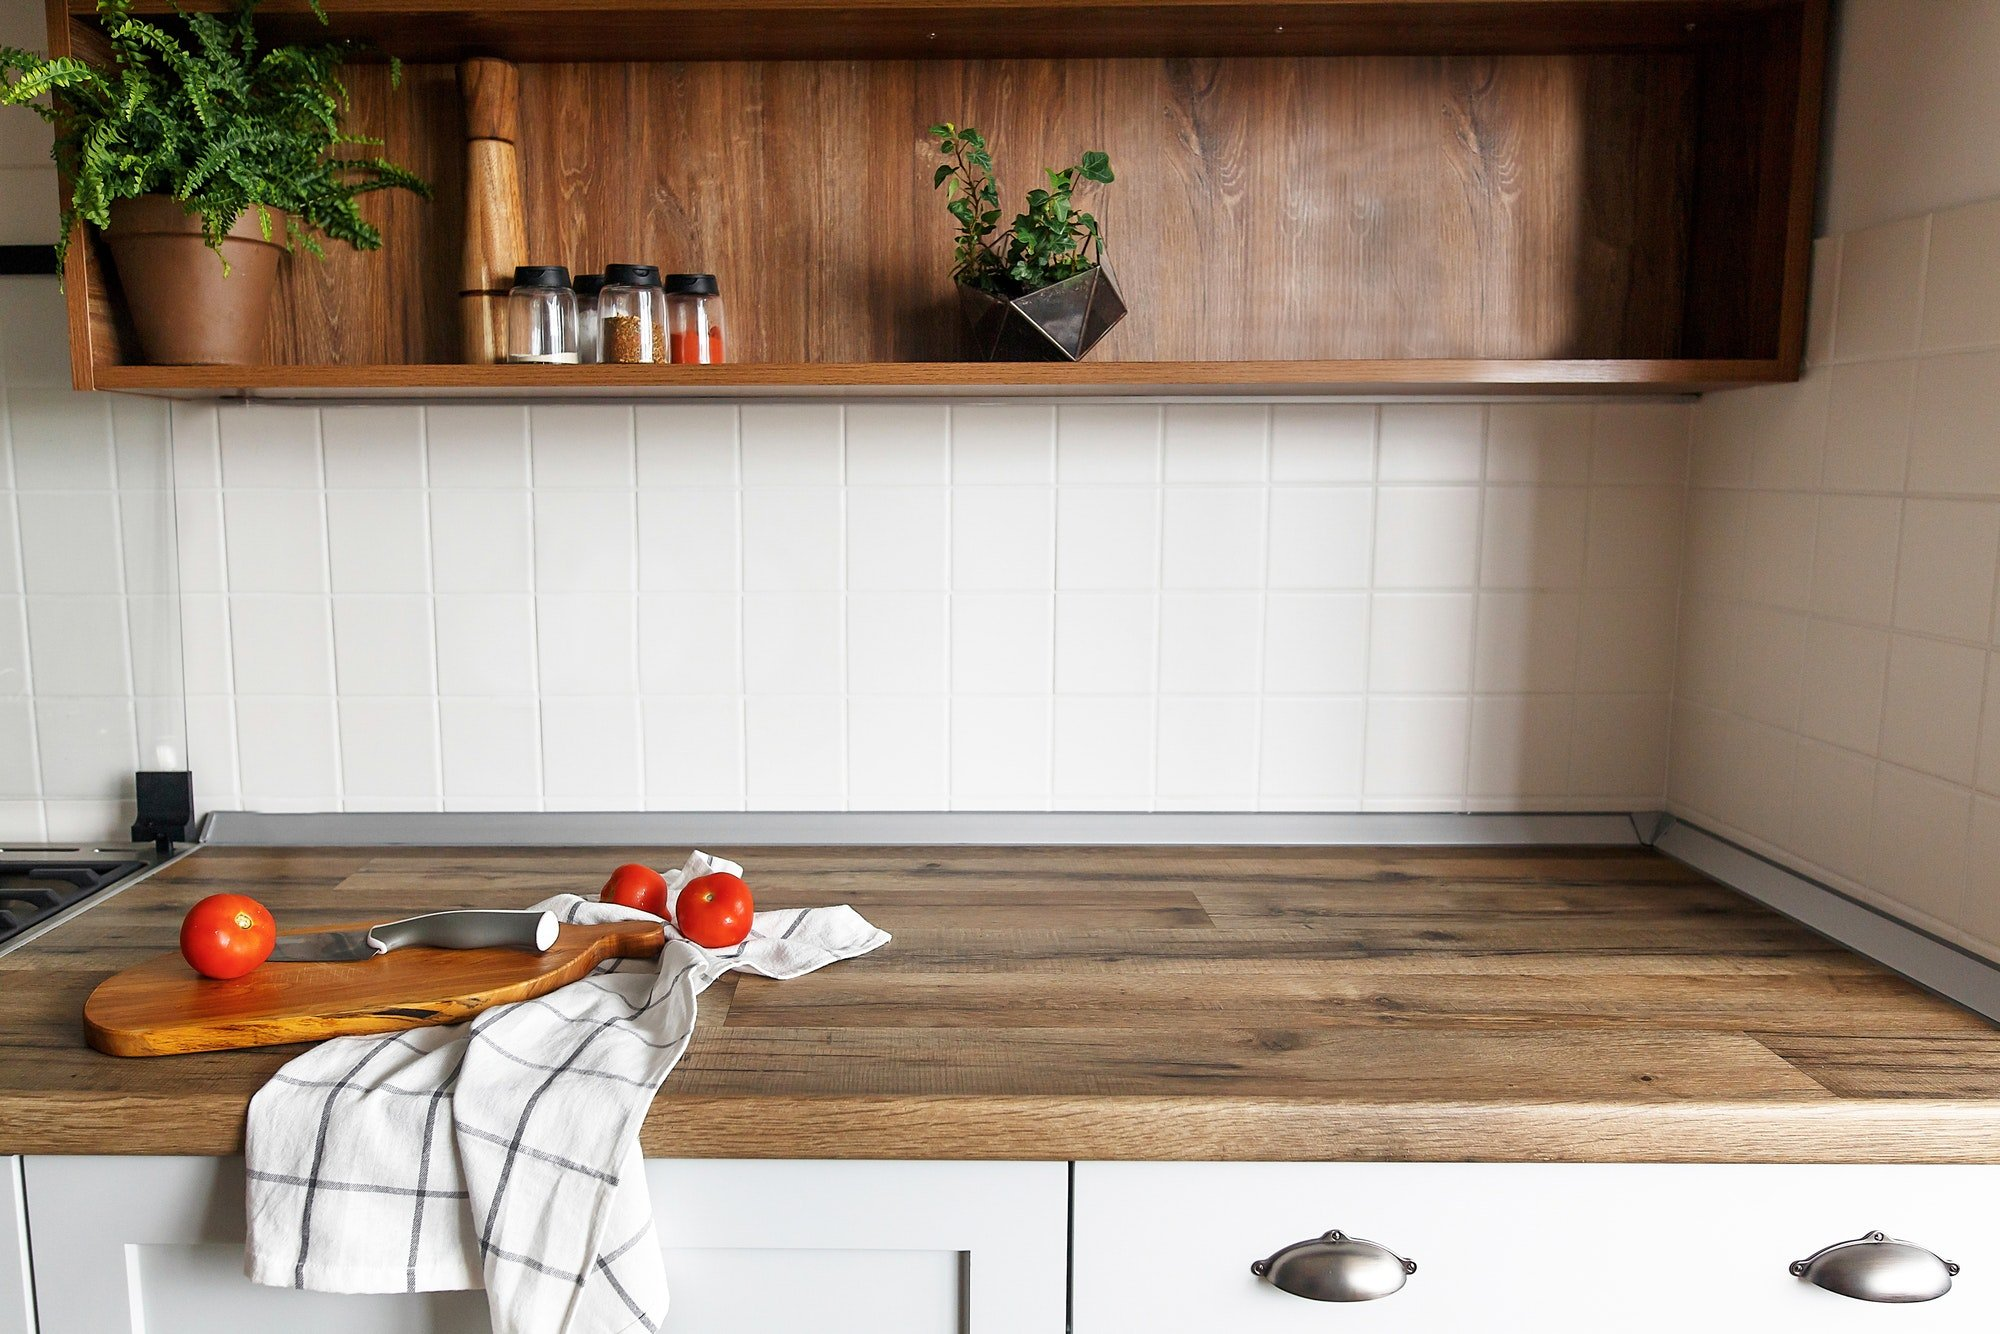 Wooden board with knife, tomatoes, towel on modern kitchen countertop